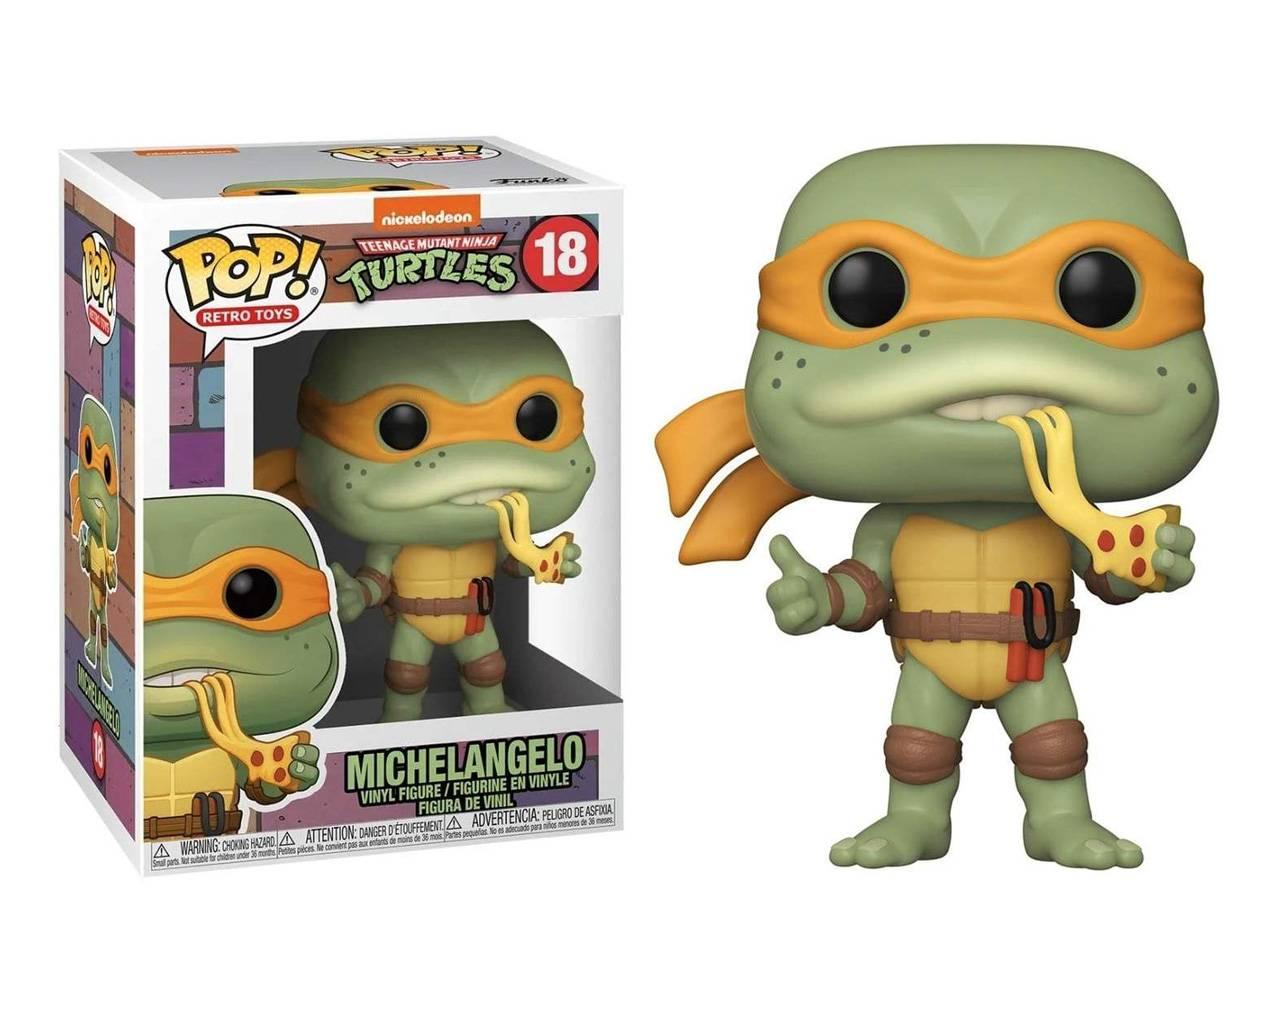 Michelangelo Pop! Vinyl